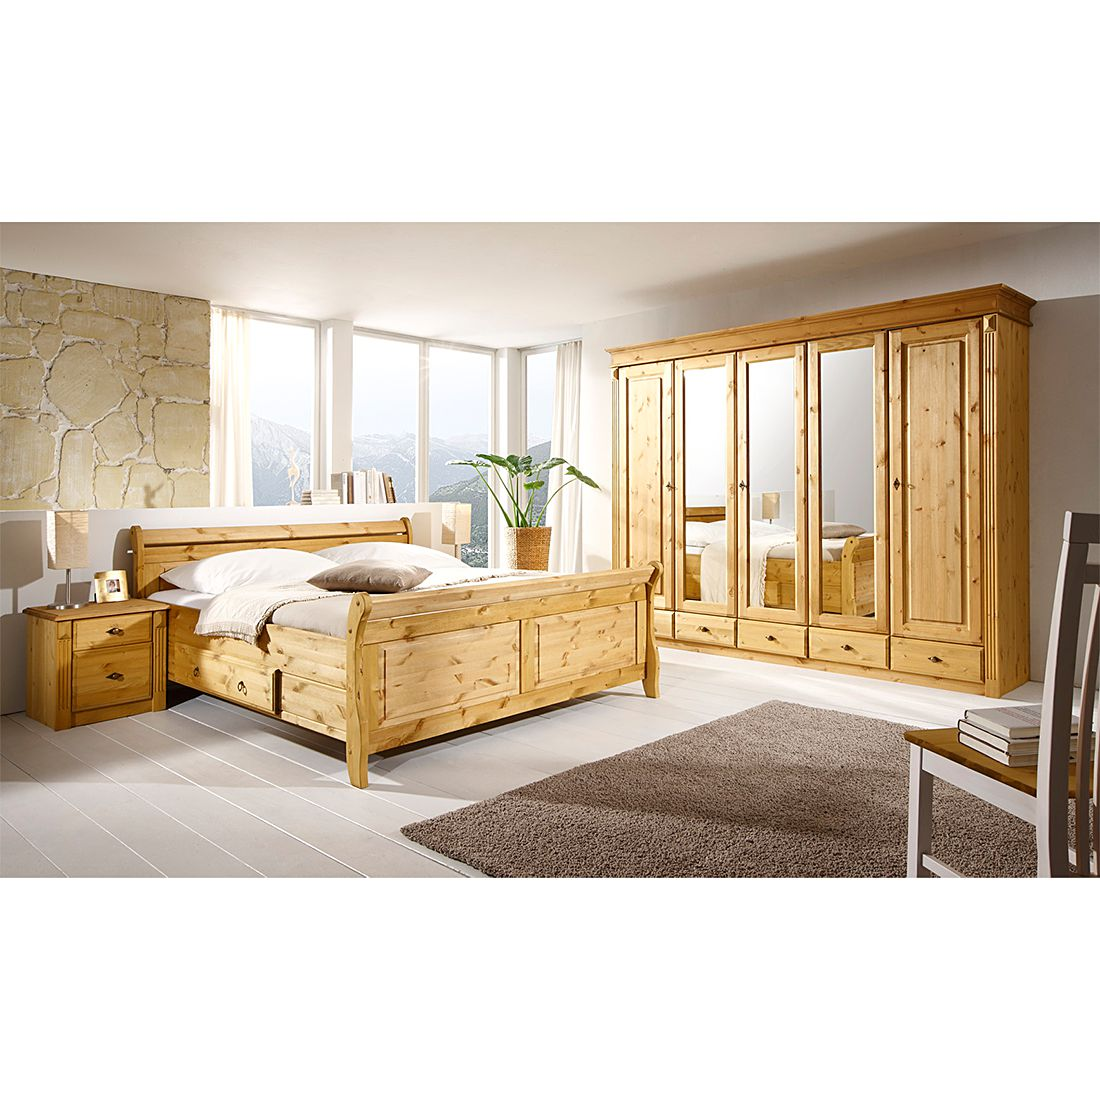 schlafzimmer set cenan iii 4 teilig kiefer massiv gebeizt lackiert. Black Bedroom Furniture Sets. Home Design Ideas